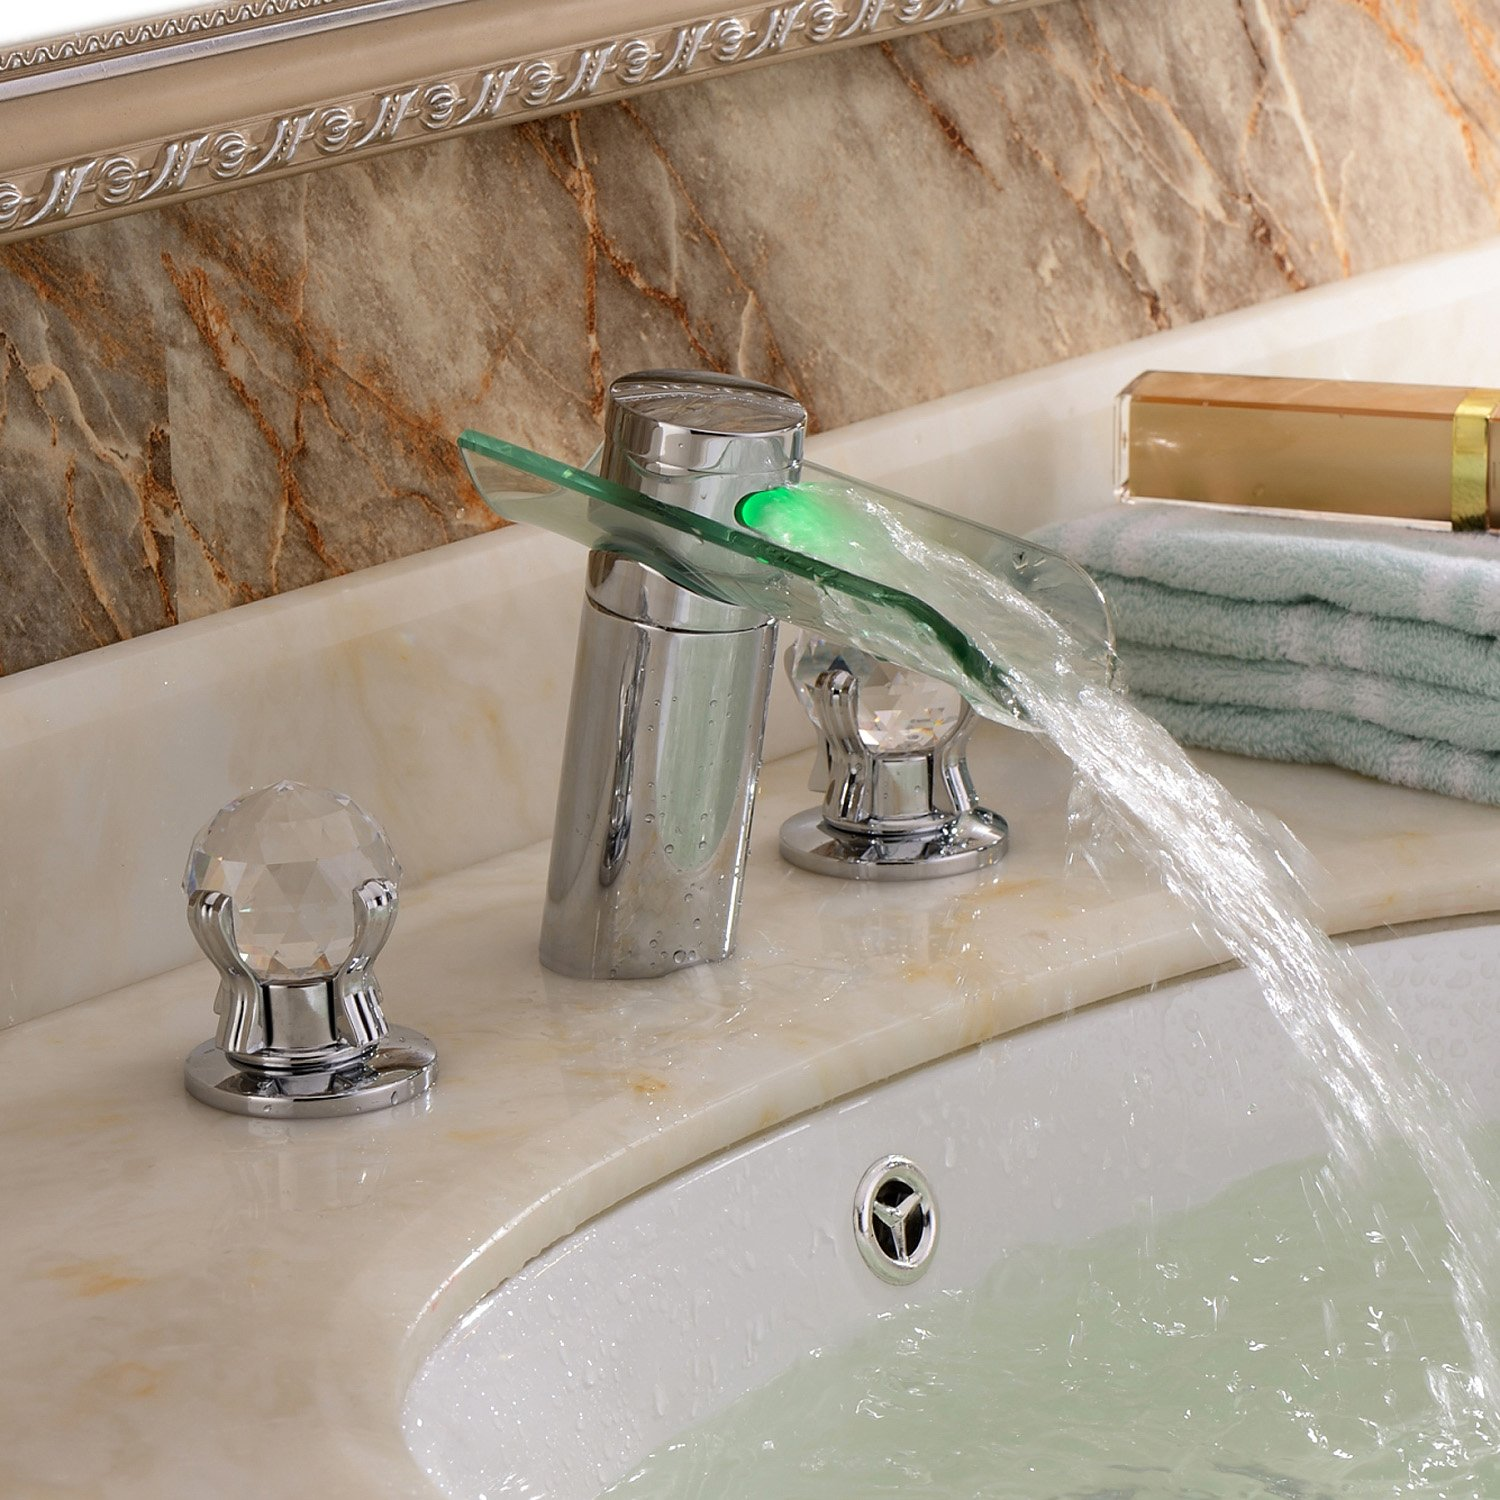 Lightinthebox® Deck Mount Contemporary Chrome Finish Two Handles Led Waterfall Glass Bathroom Sink Faucet Widespread Bathtub Mixer Taps Bath Shower Faucets Lavatory Plumbing Fixtures Single Hole Unique Designer Vessel Sink Faucets Water Flow Powered by LightInTheBox